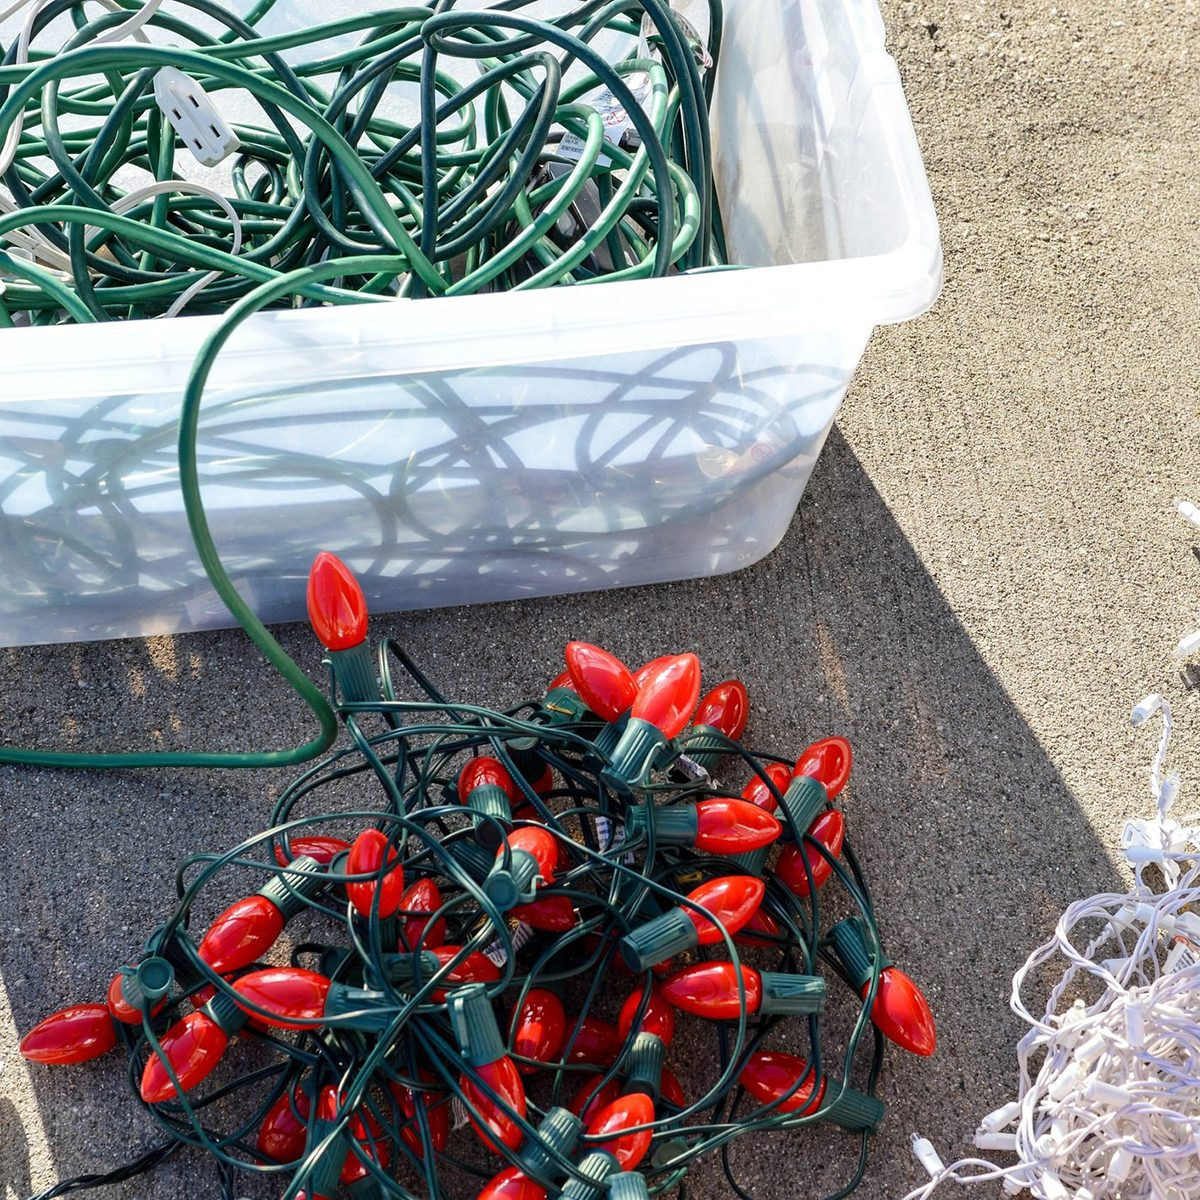 Outdoor holiday lights laid out on a driveway next to a plastic storage bin full of extension cords.